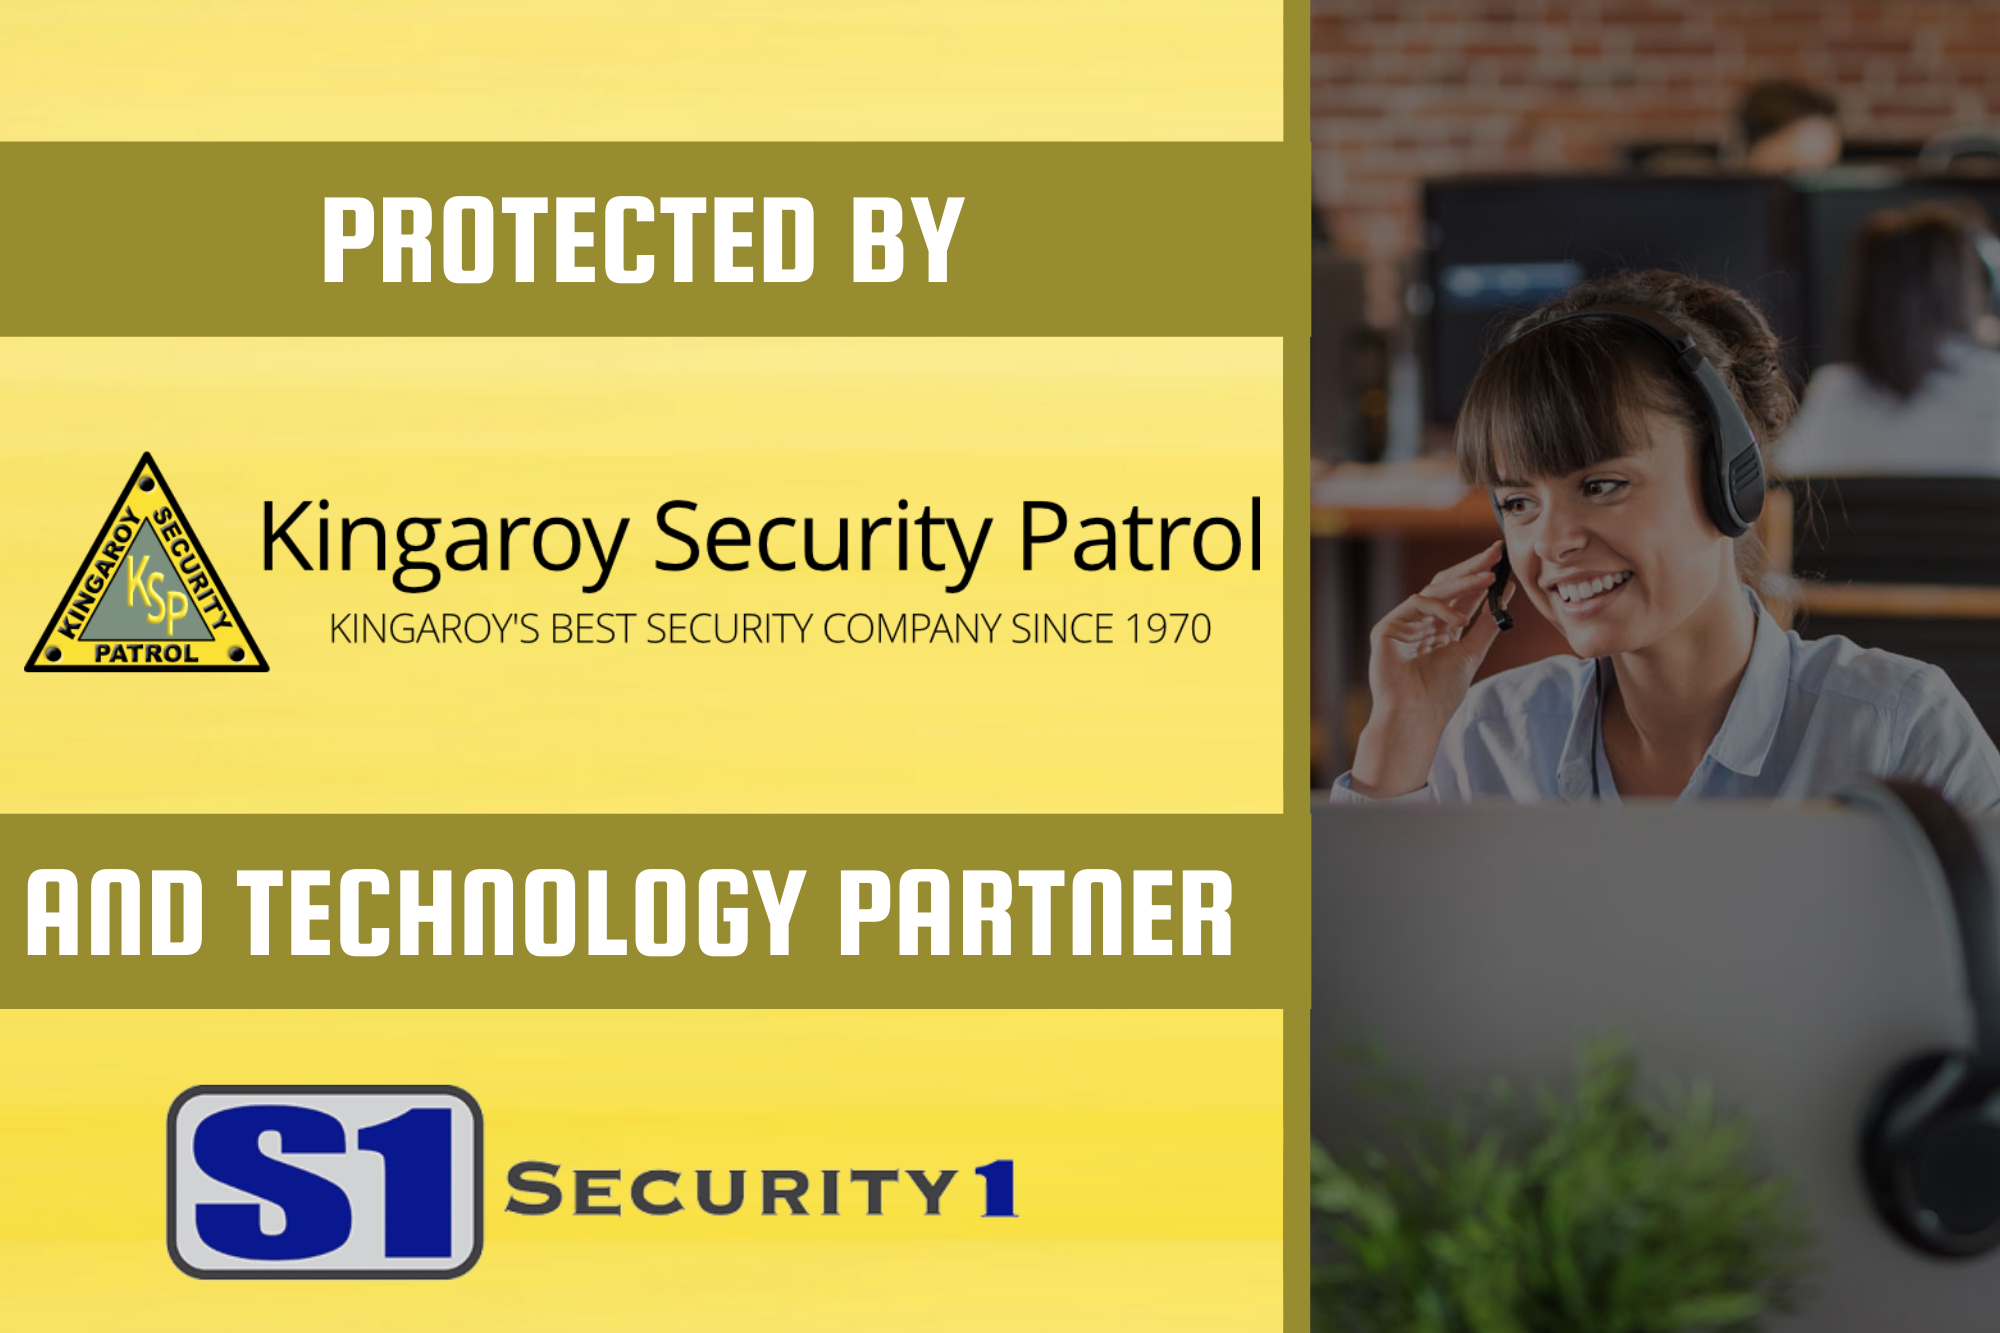 Kingaroy Security Patrol - Kingaroy's Best Security Company Since 1970